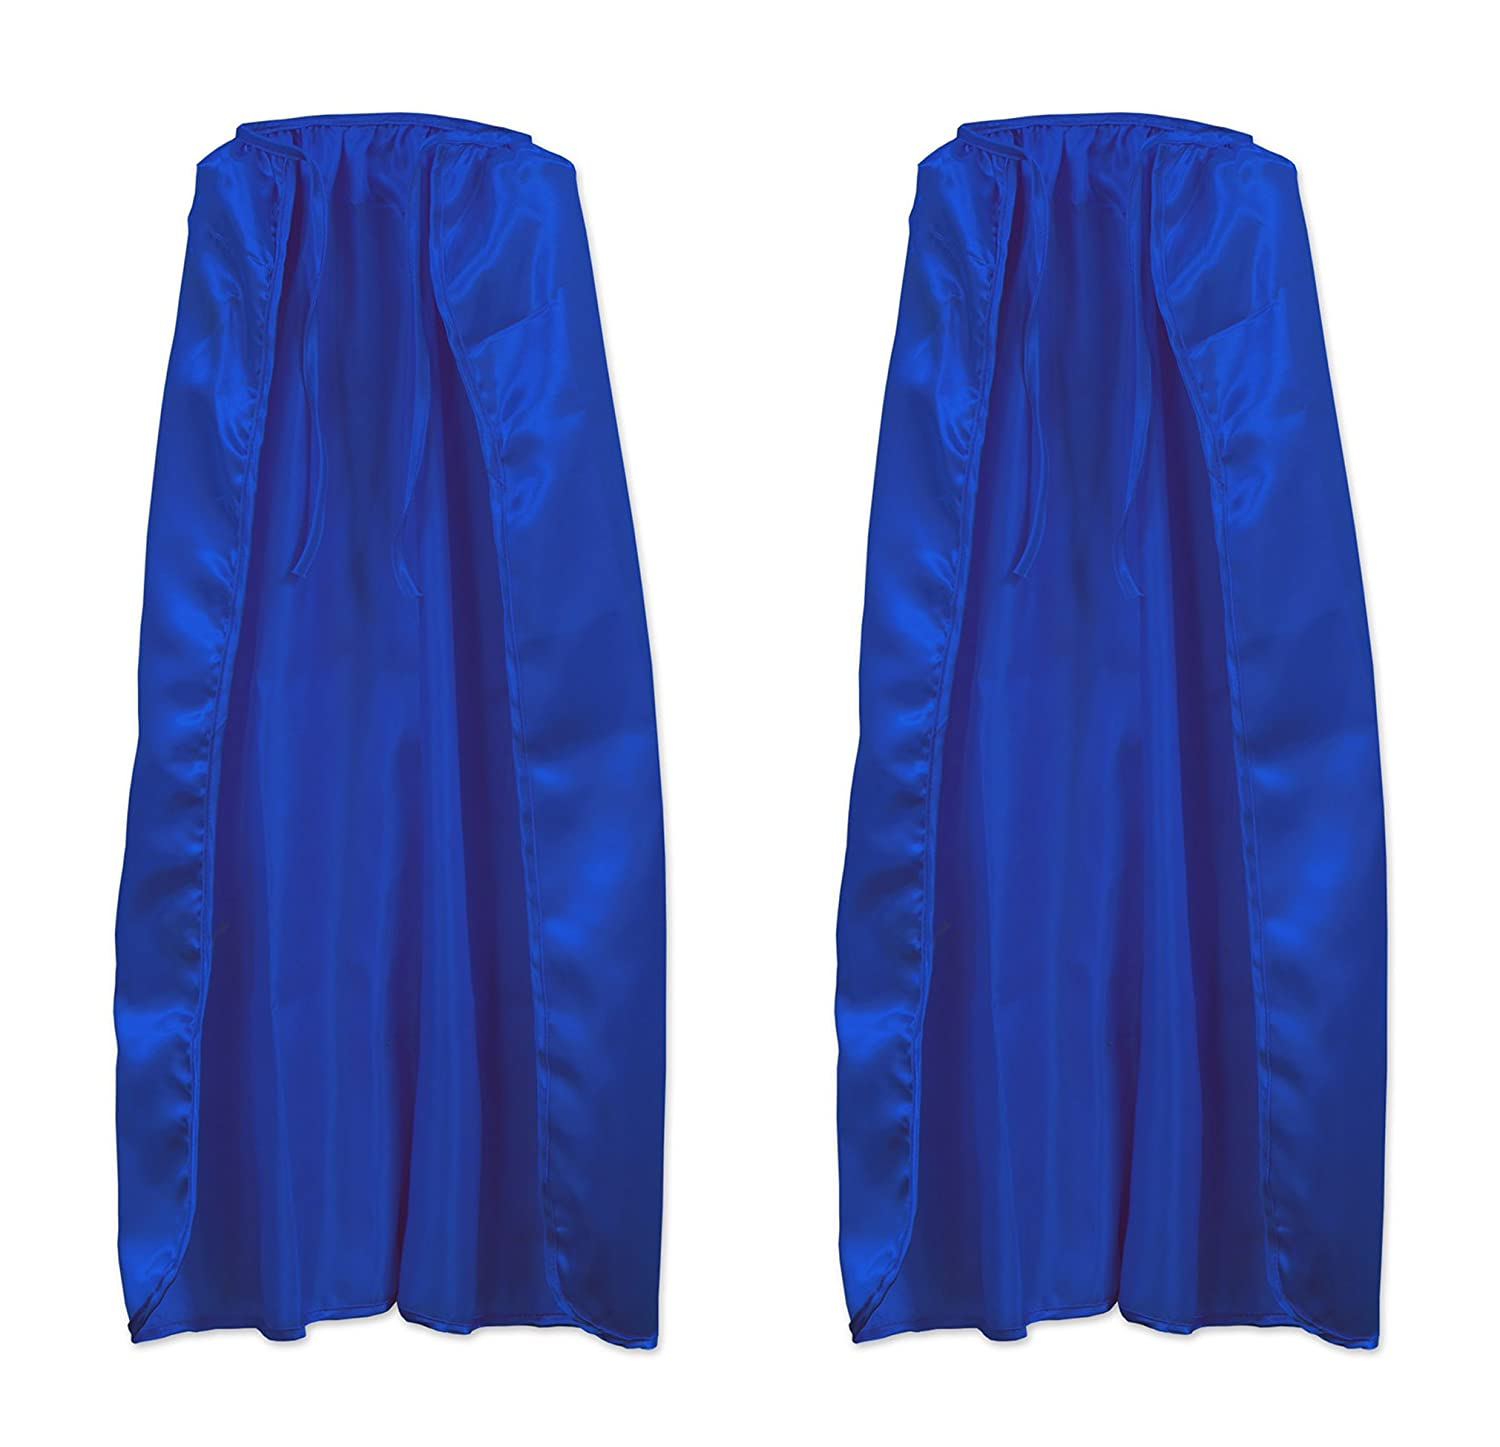 Blue Beistle 60062-B 2 Piece Fabric Capes 30